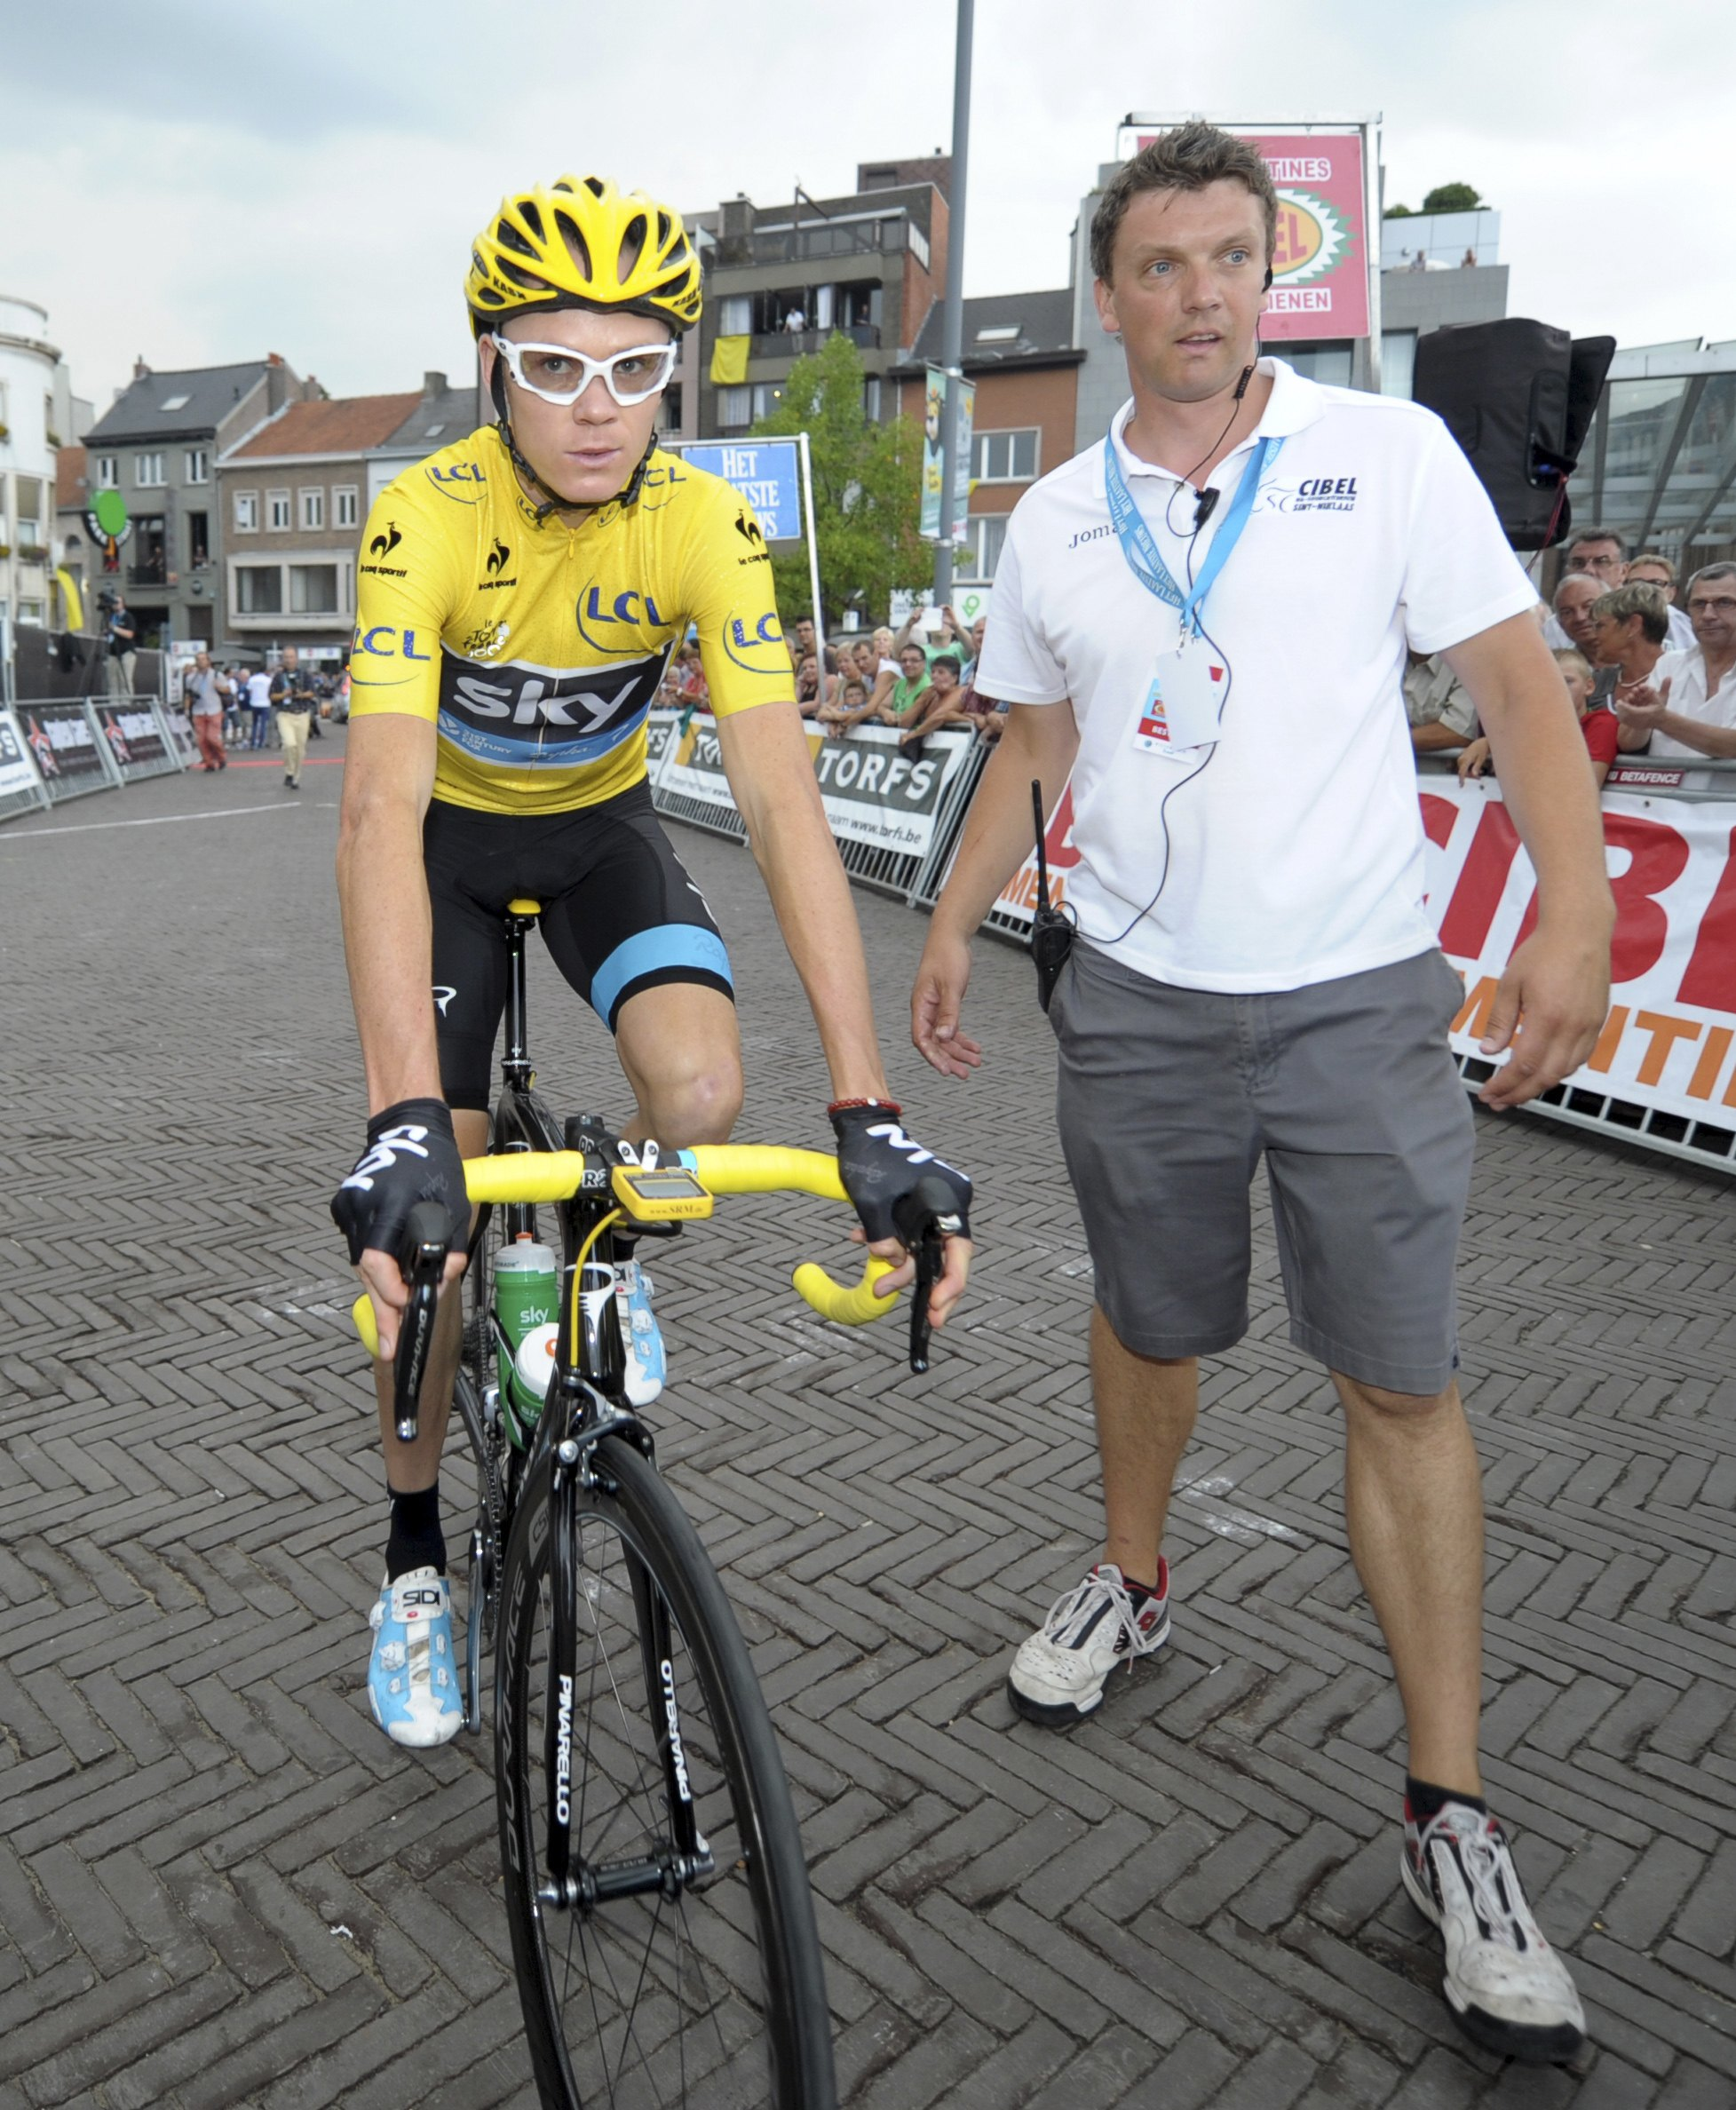 Chris Froome finished 12th at the Criterium du Dauphine. Picture: Action Images